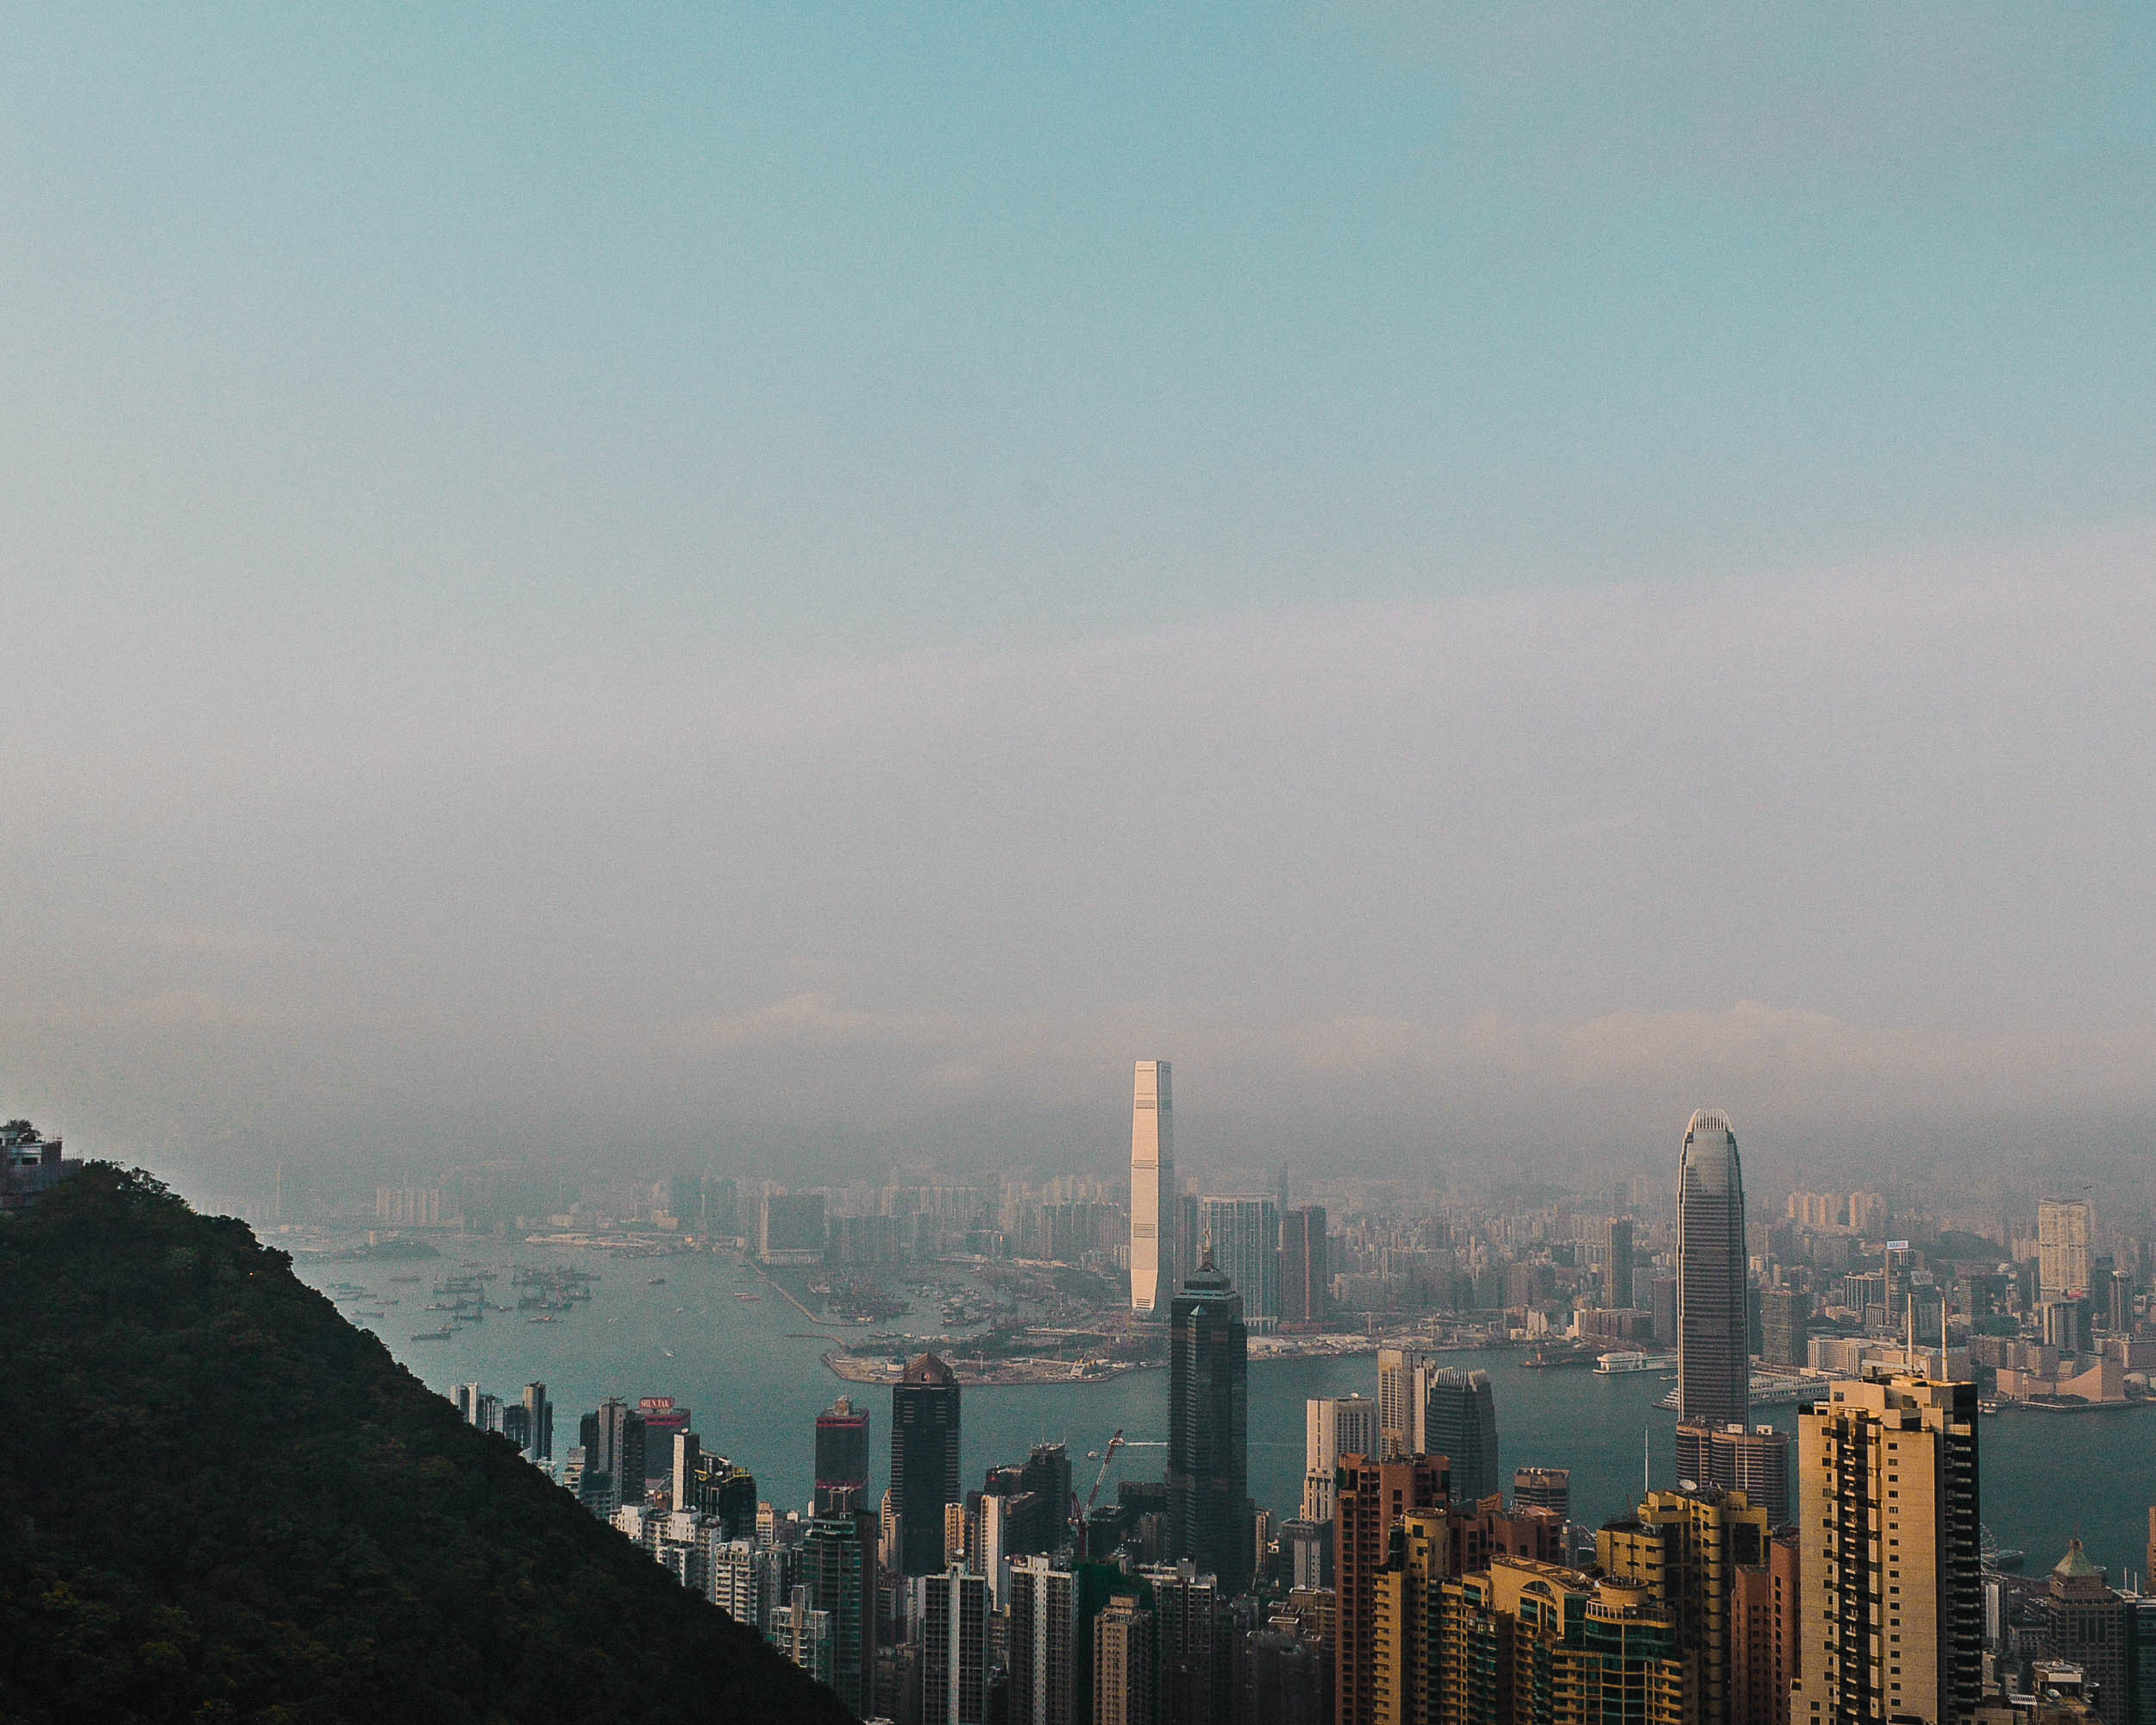 Hong Kong Skyline Travel | 2017 Travel Year in Review + Travel and Blog Goals for 2018 | goseekexplore.com